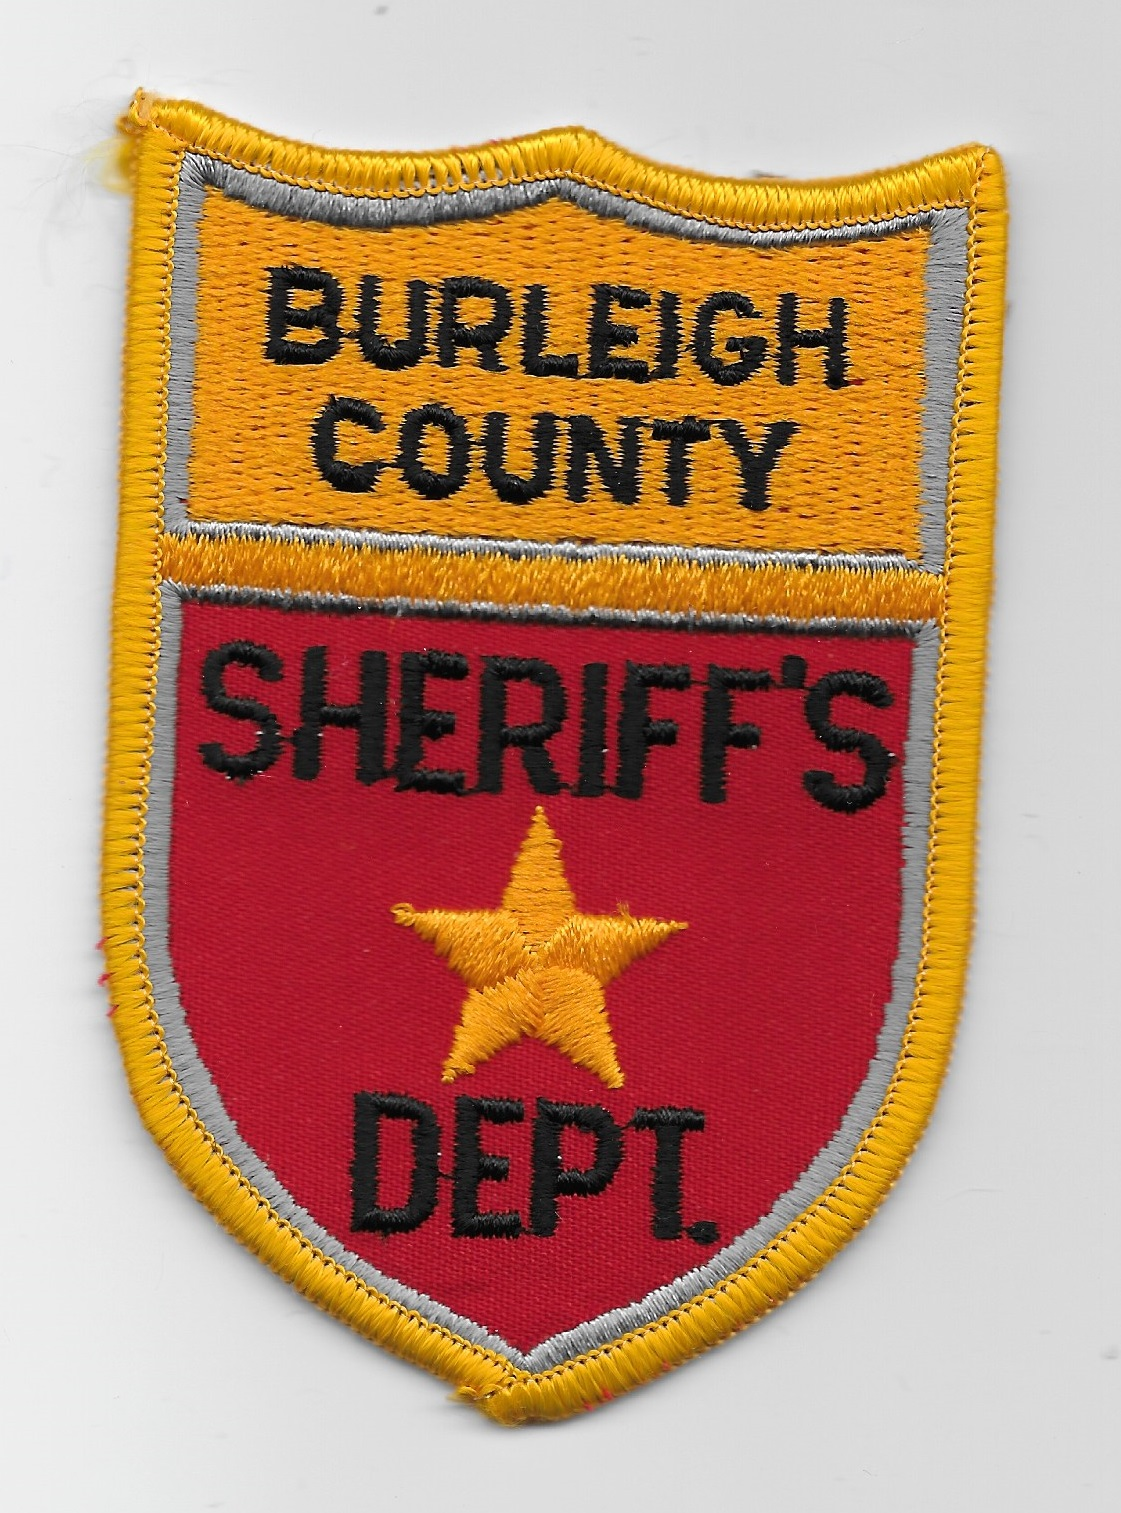 Burleigh County Sheriff ND